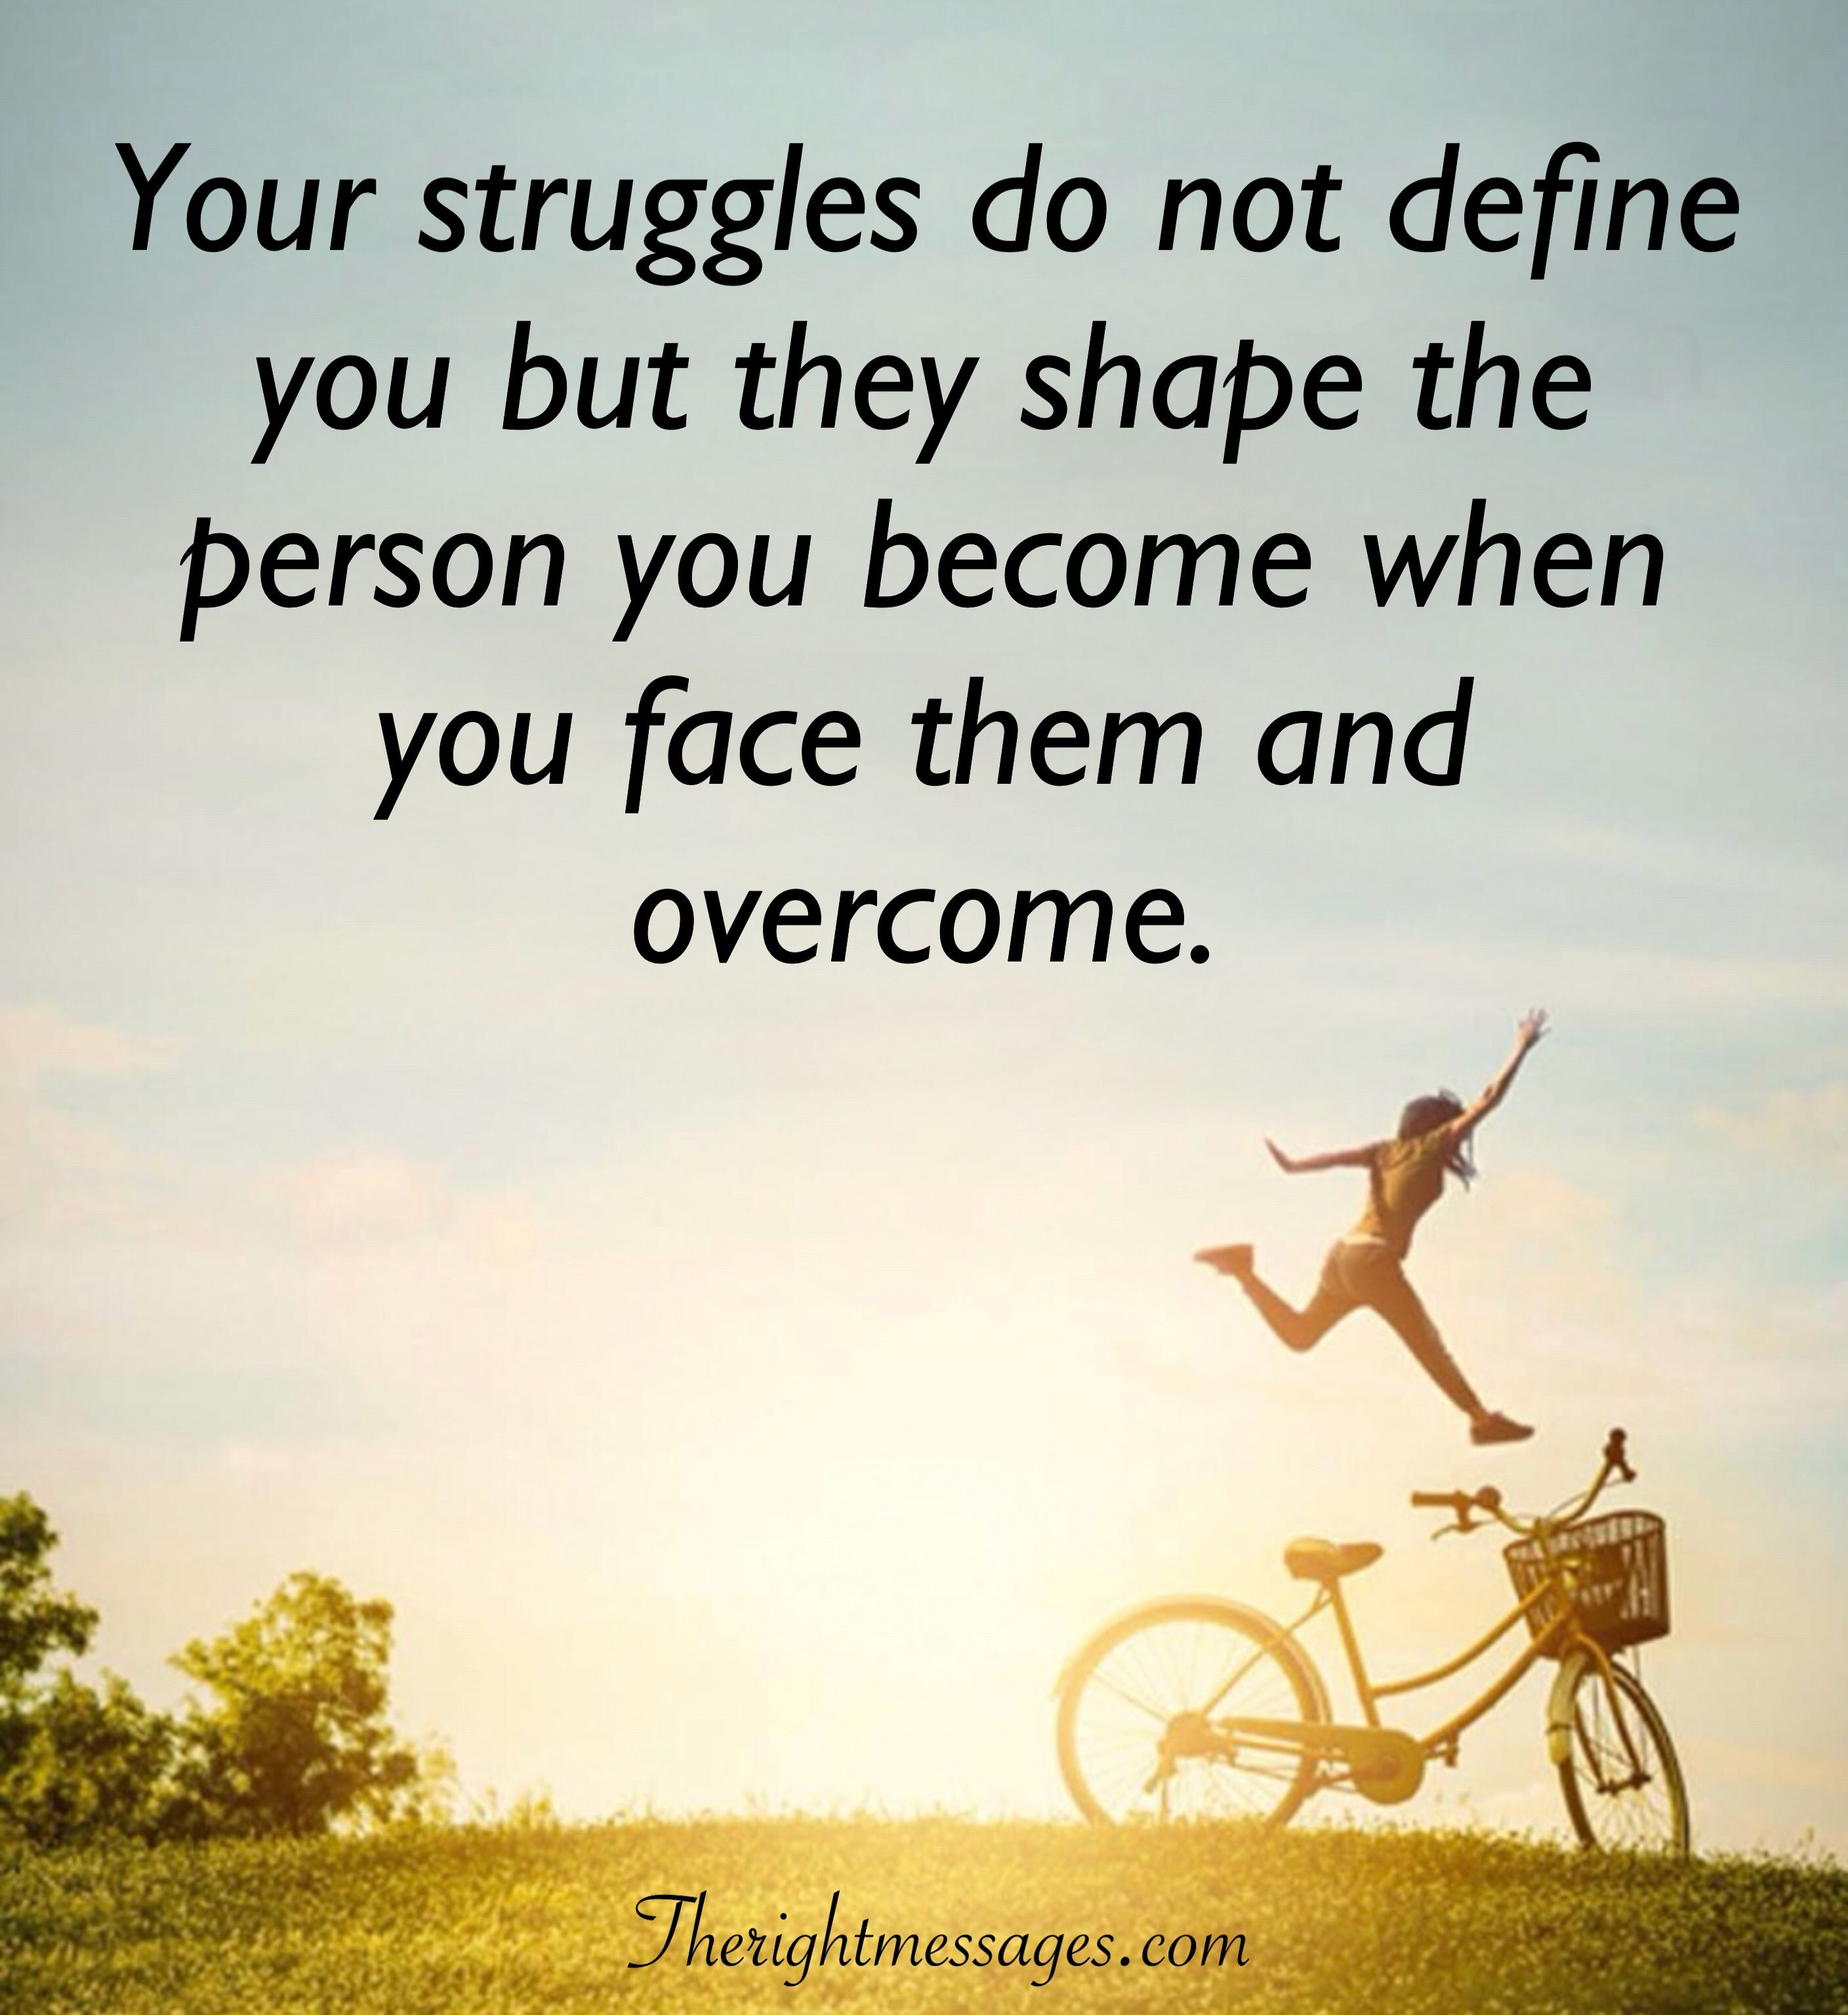 31 Inspirational Quotes About Life And Struggles Power Up Quoted